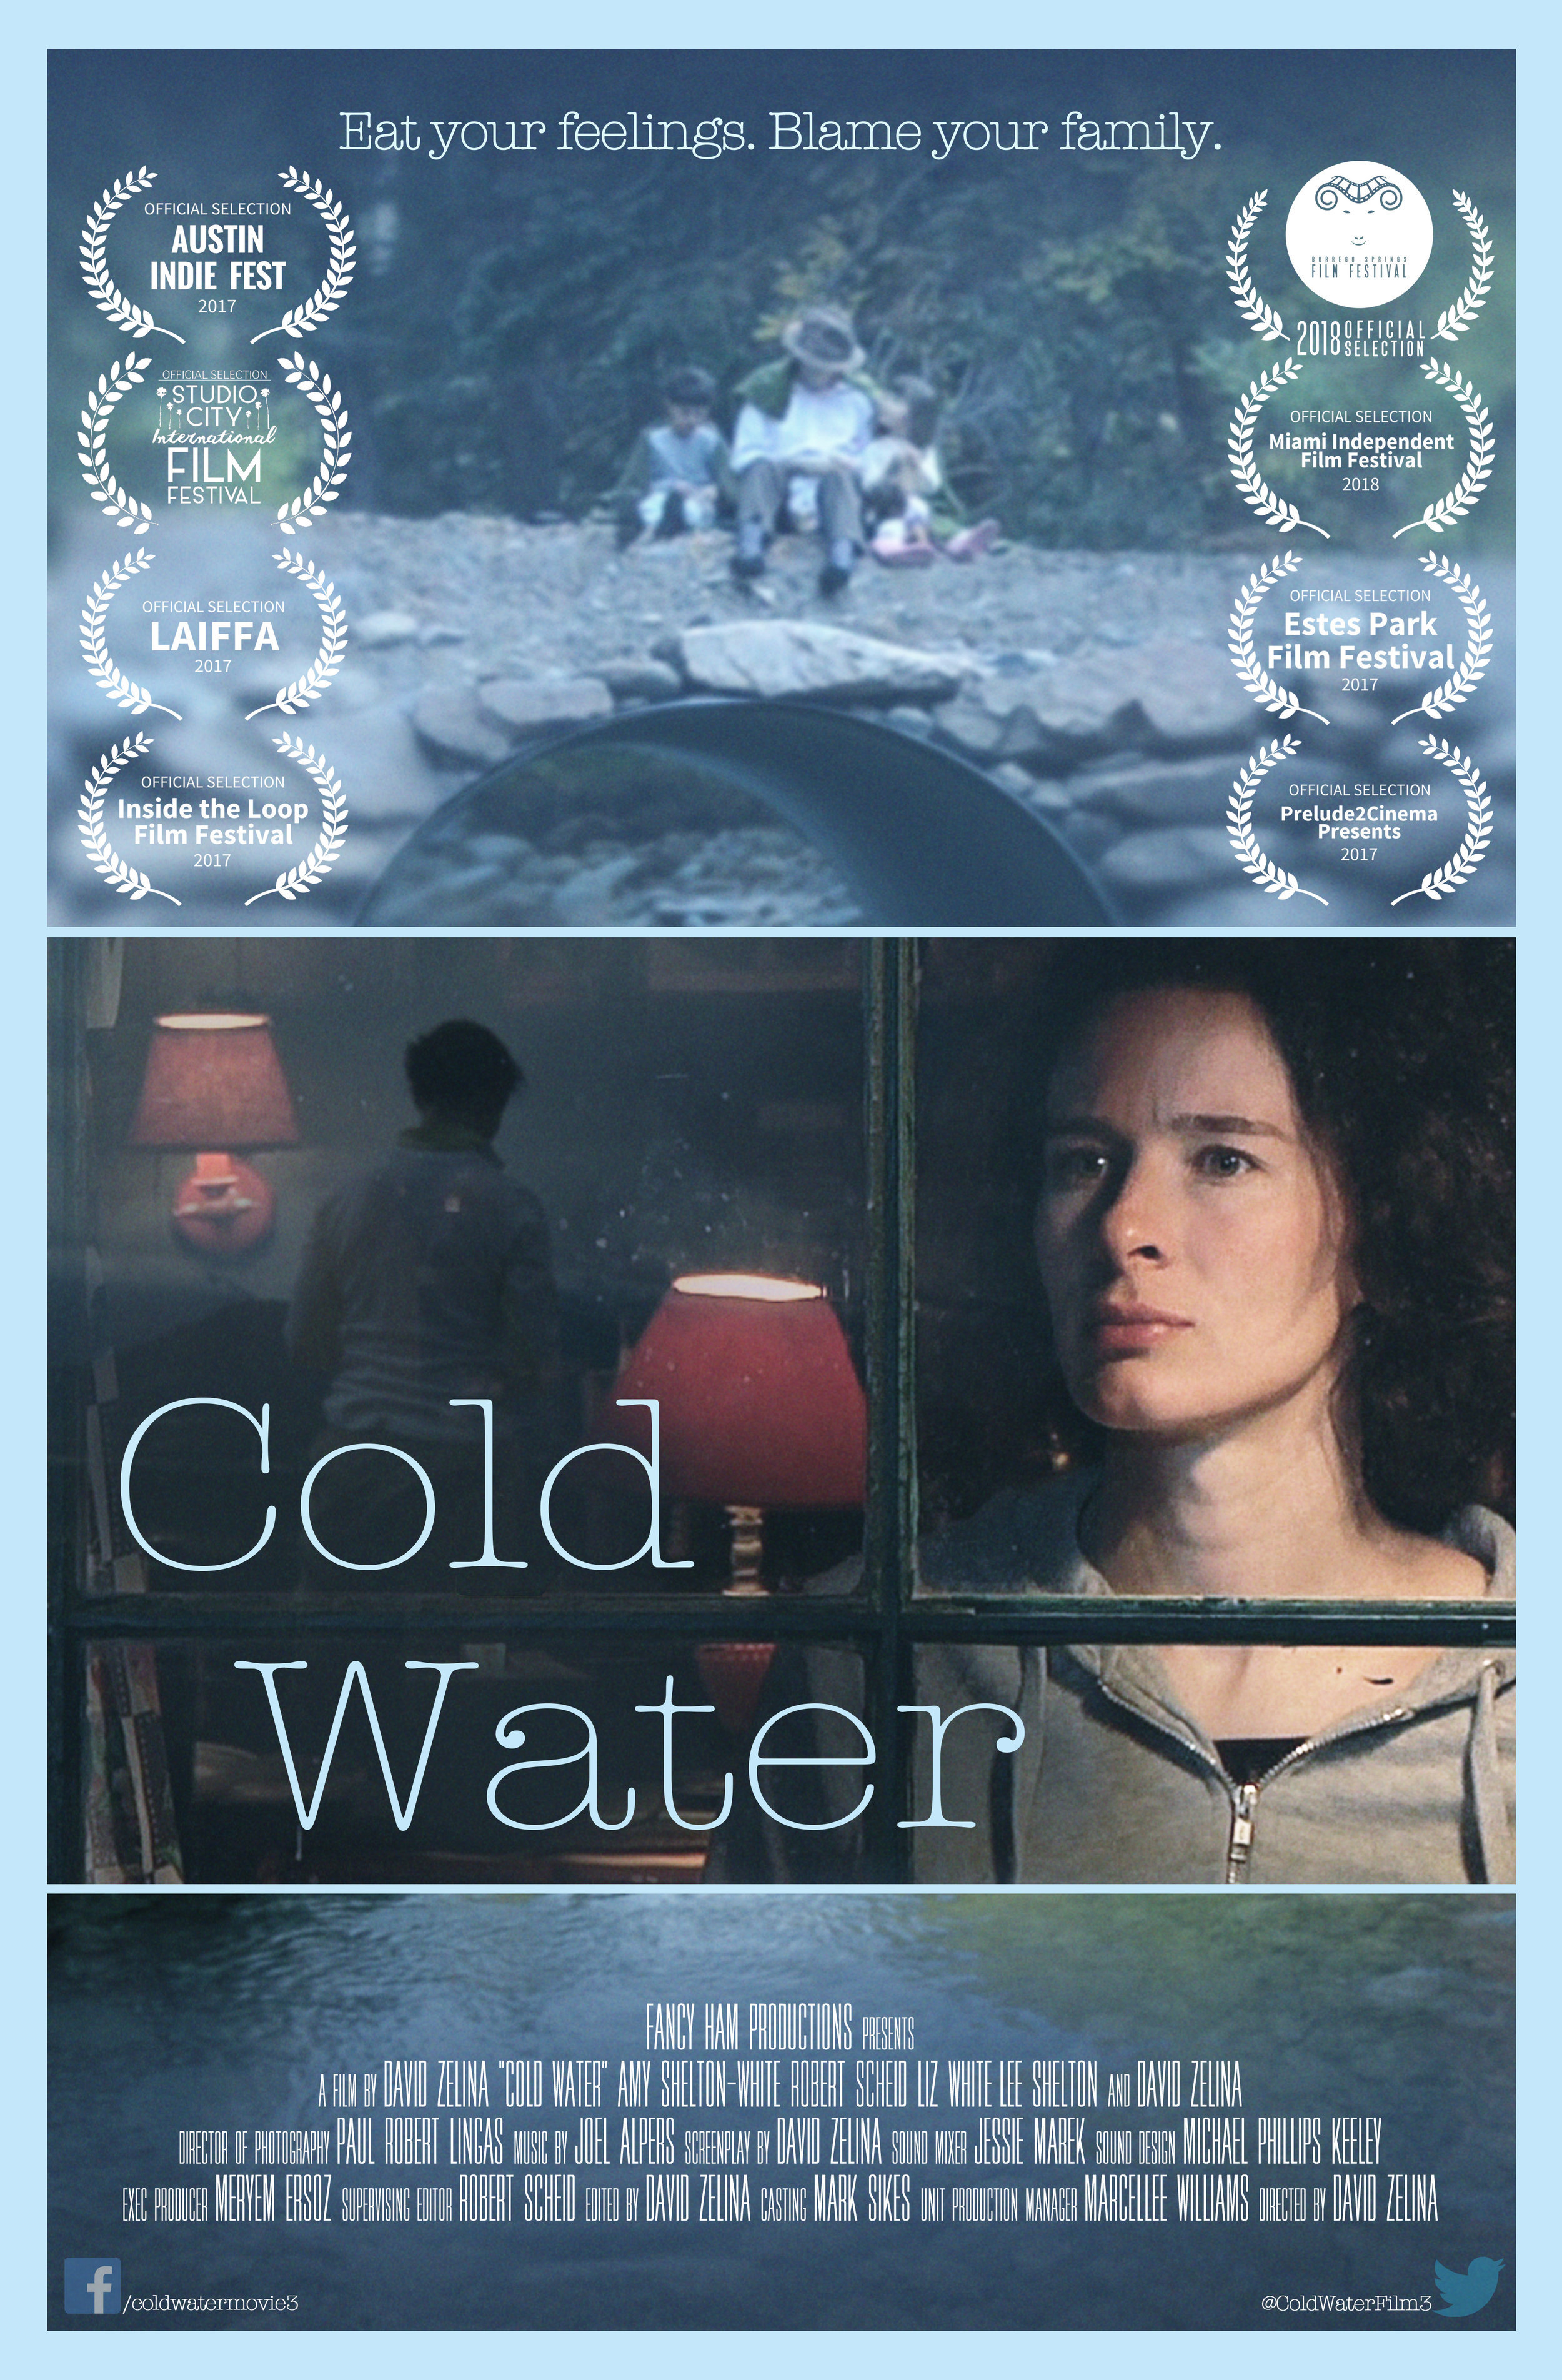 Cold Water Poster 2017 Laurels 08a.jpg